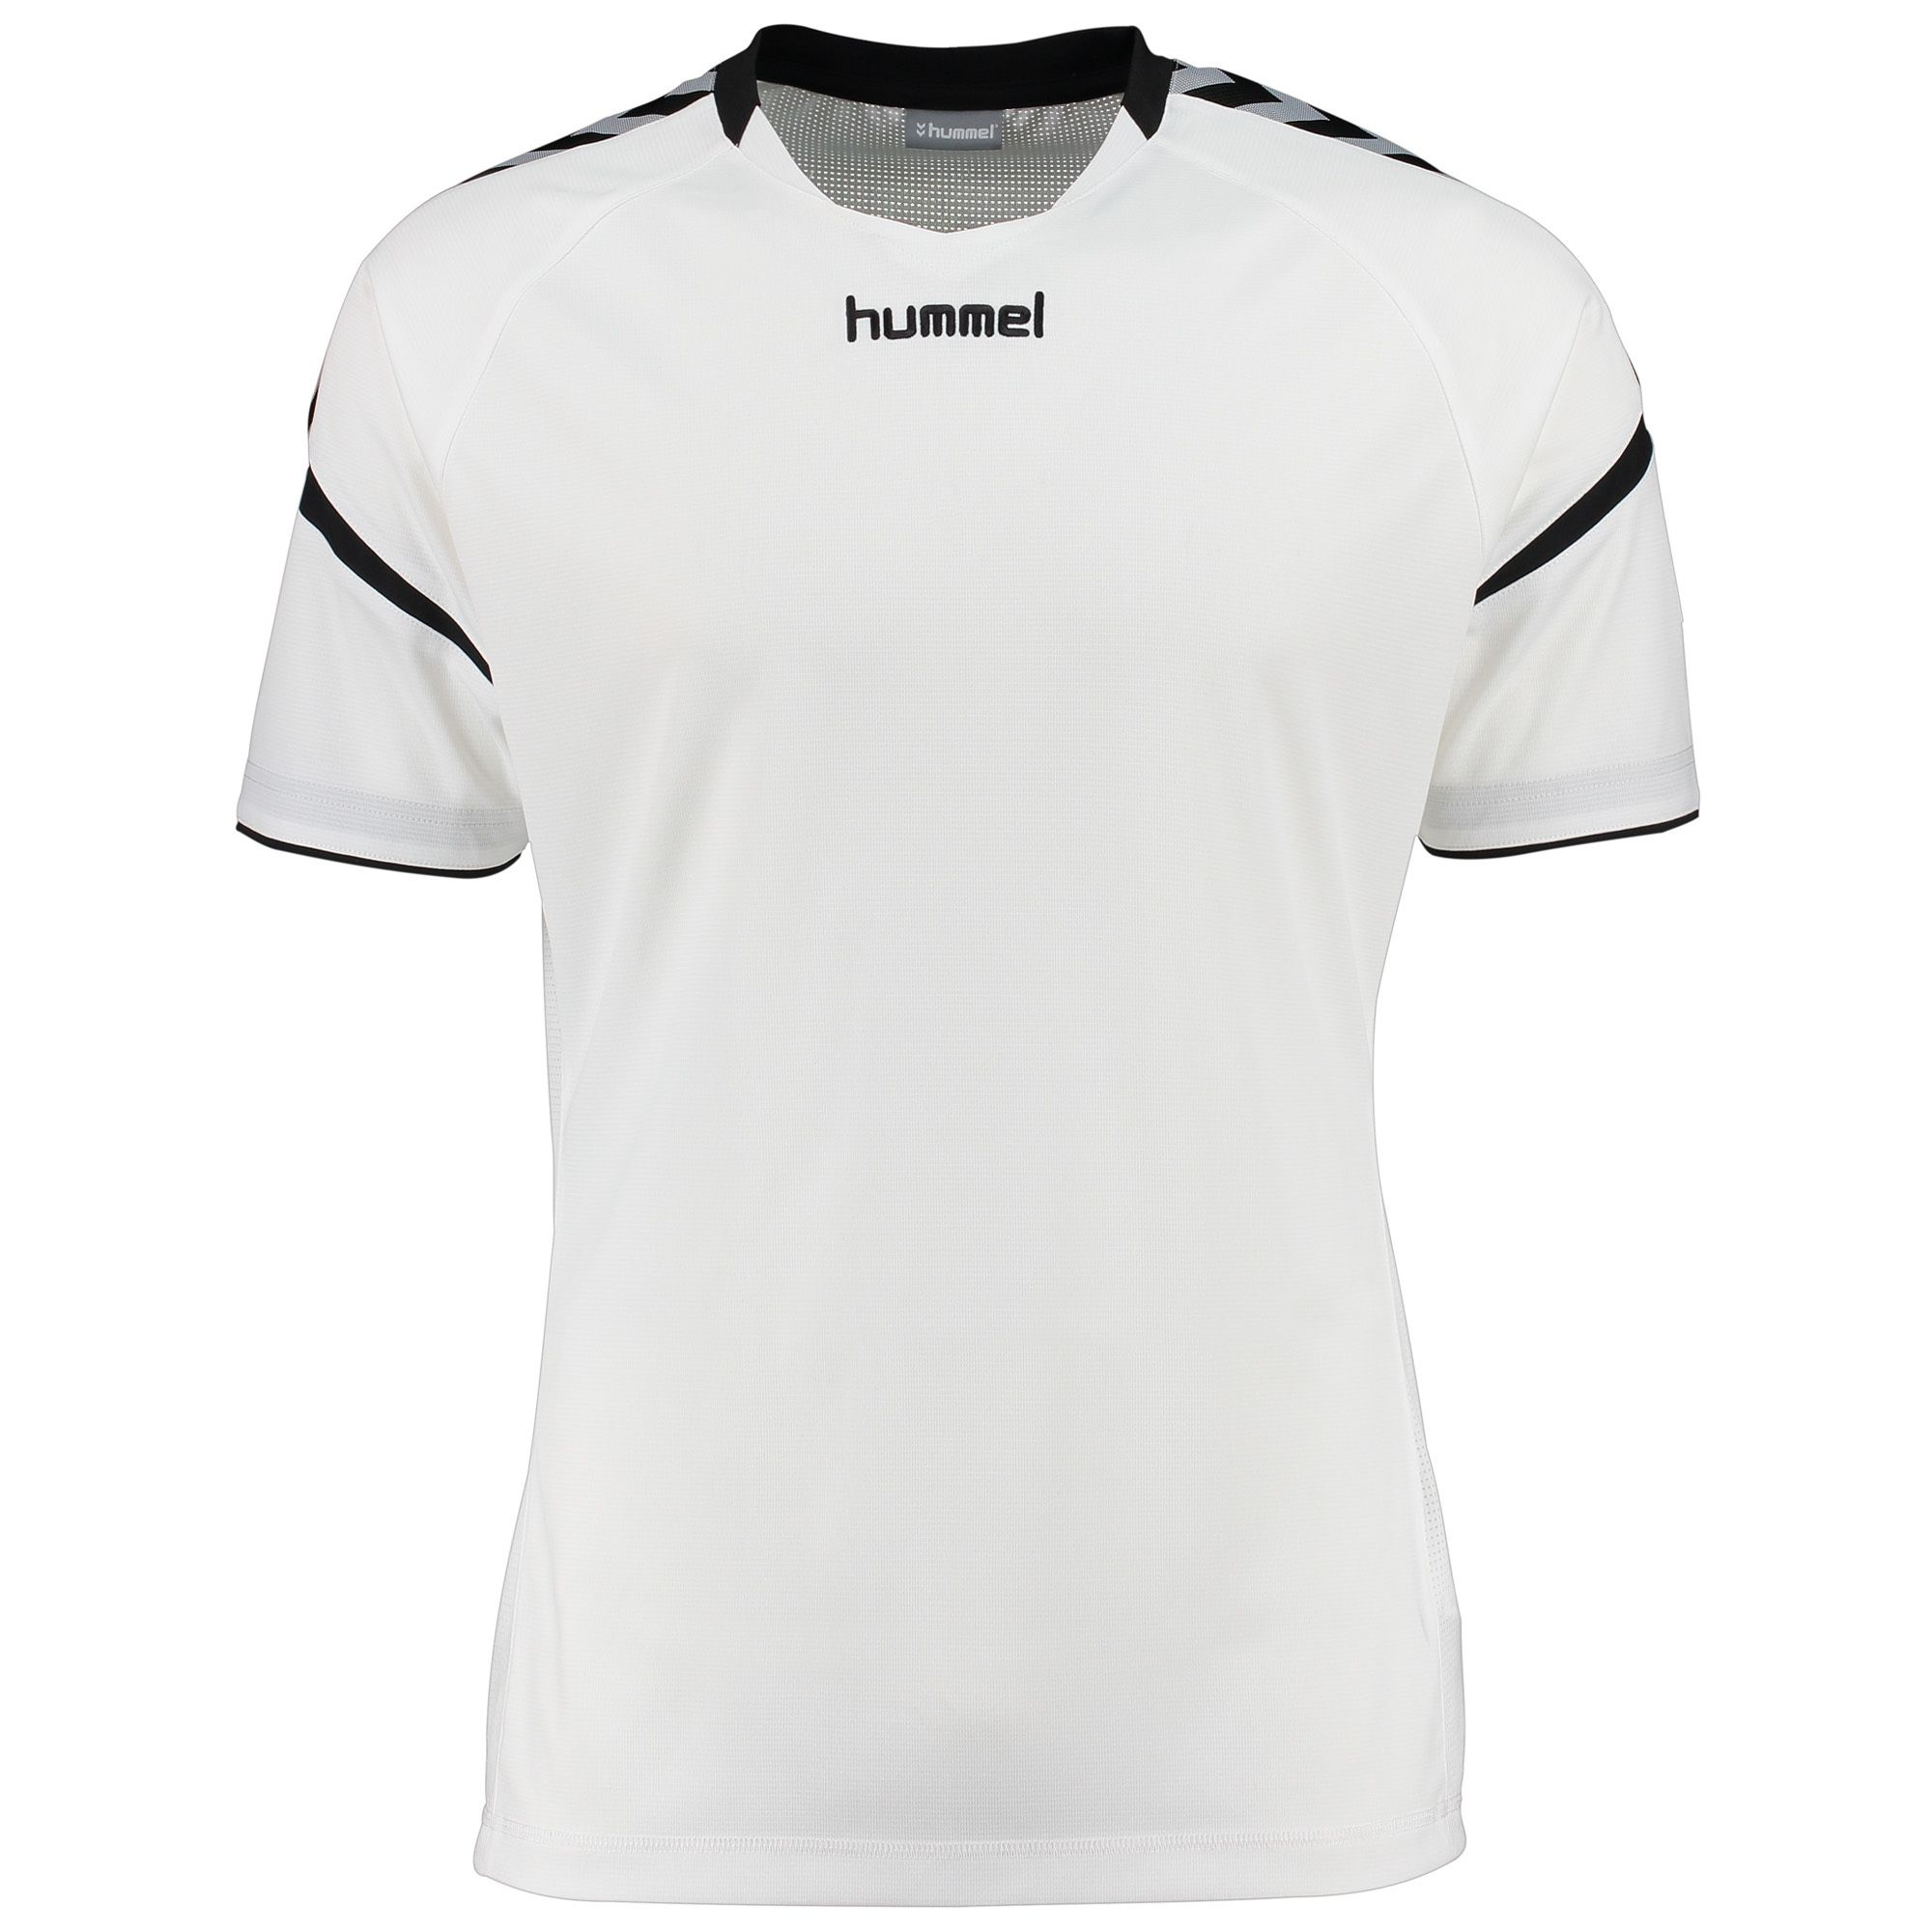 HUMMEL Hummel Authentic Charge Handballtrikot Herren